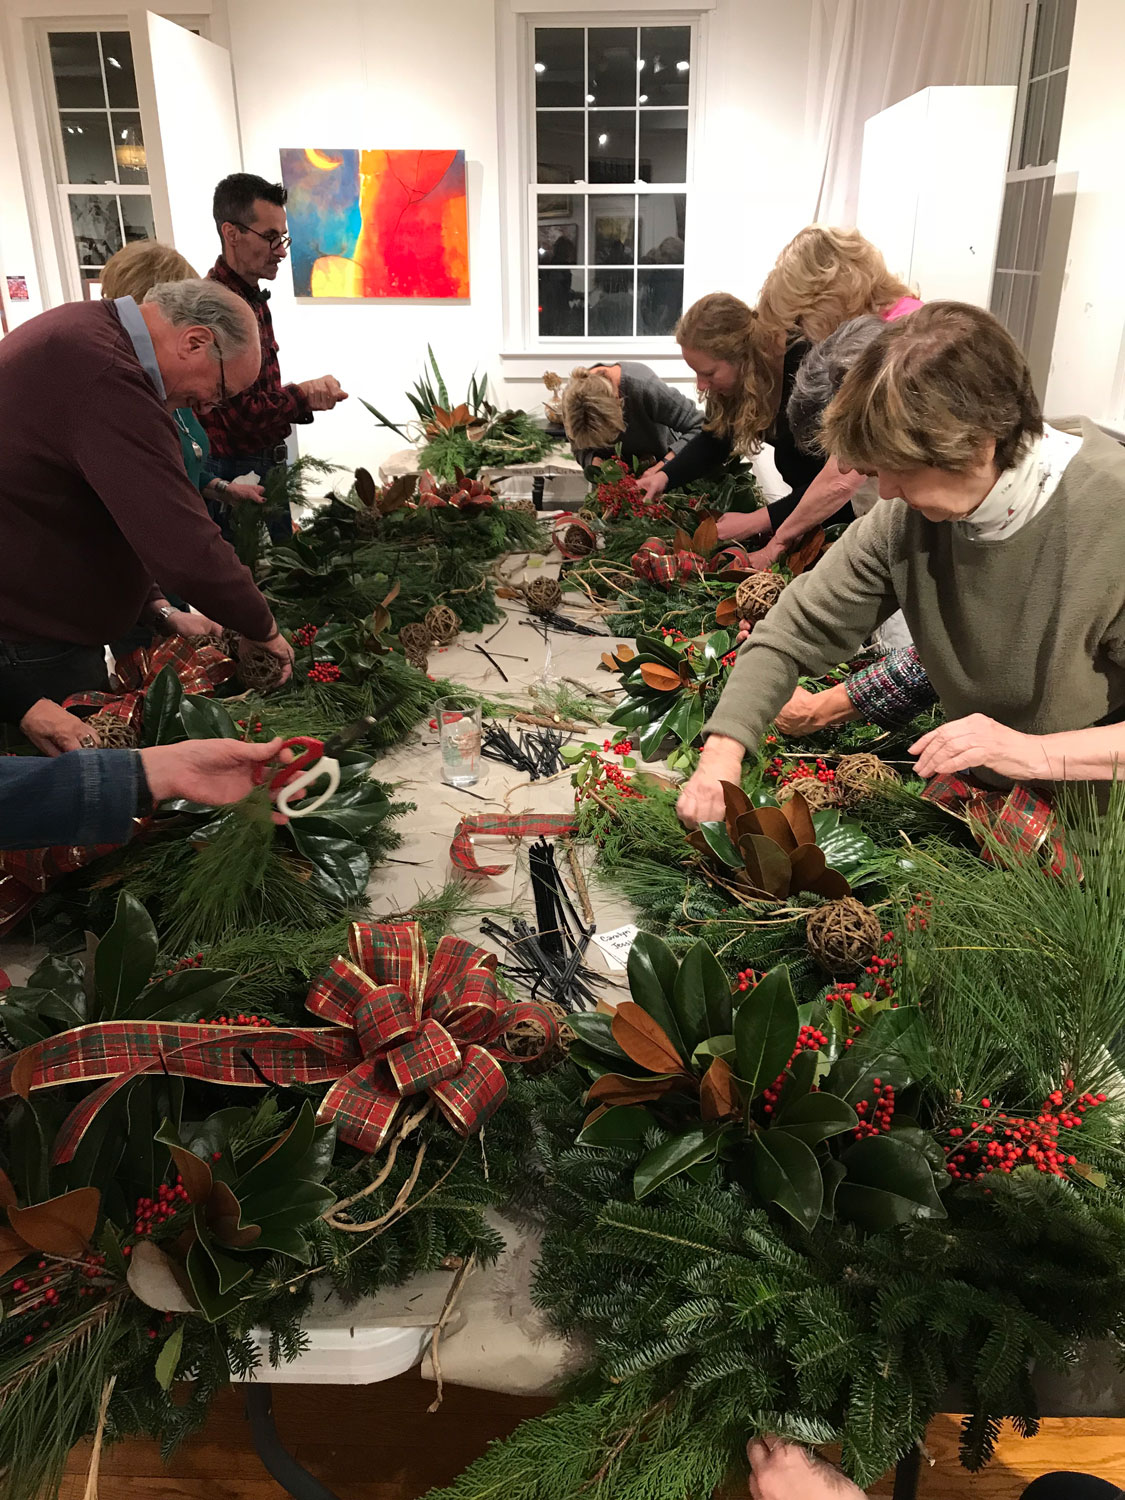 Making-Wreaths.jpg